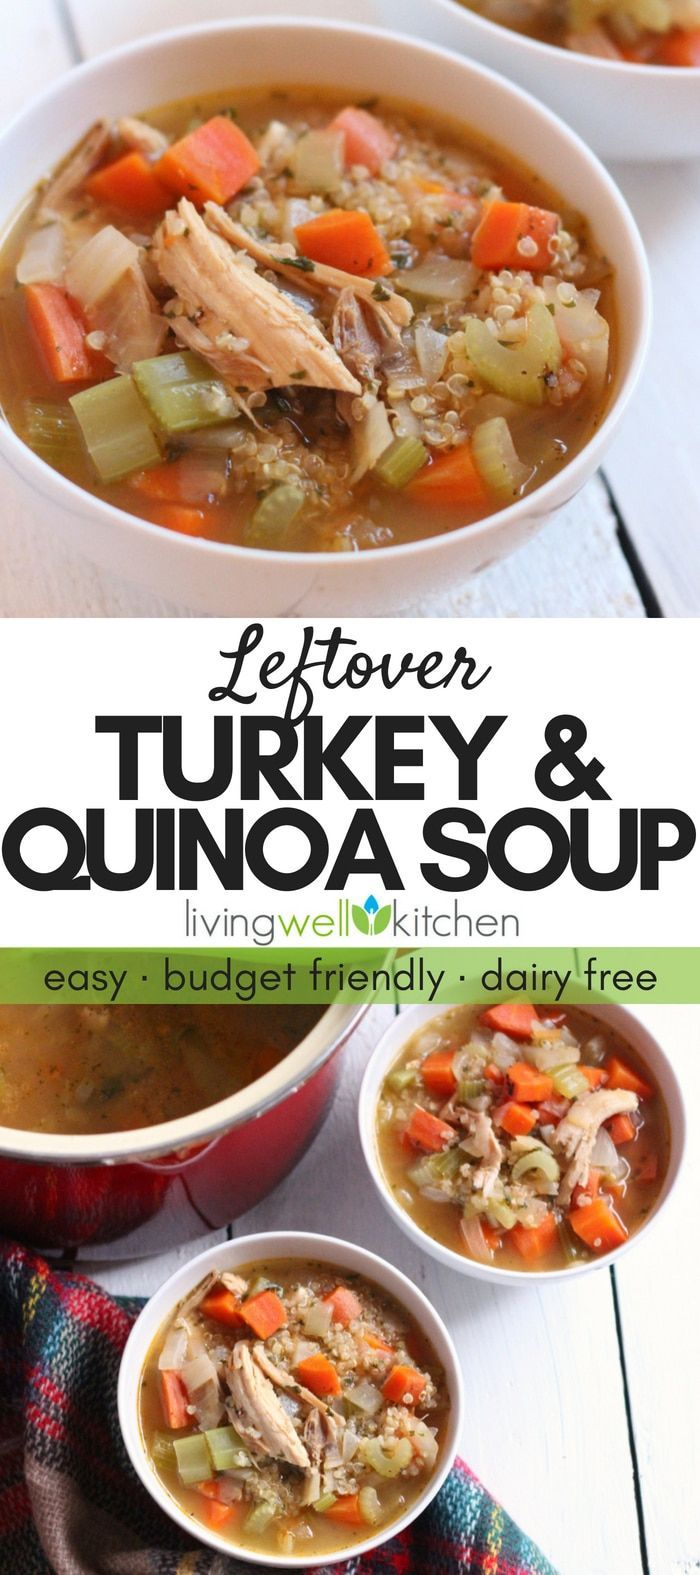 Photo of Leftover Turkey and Quinoa Soup